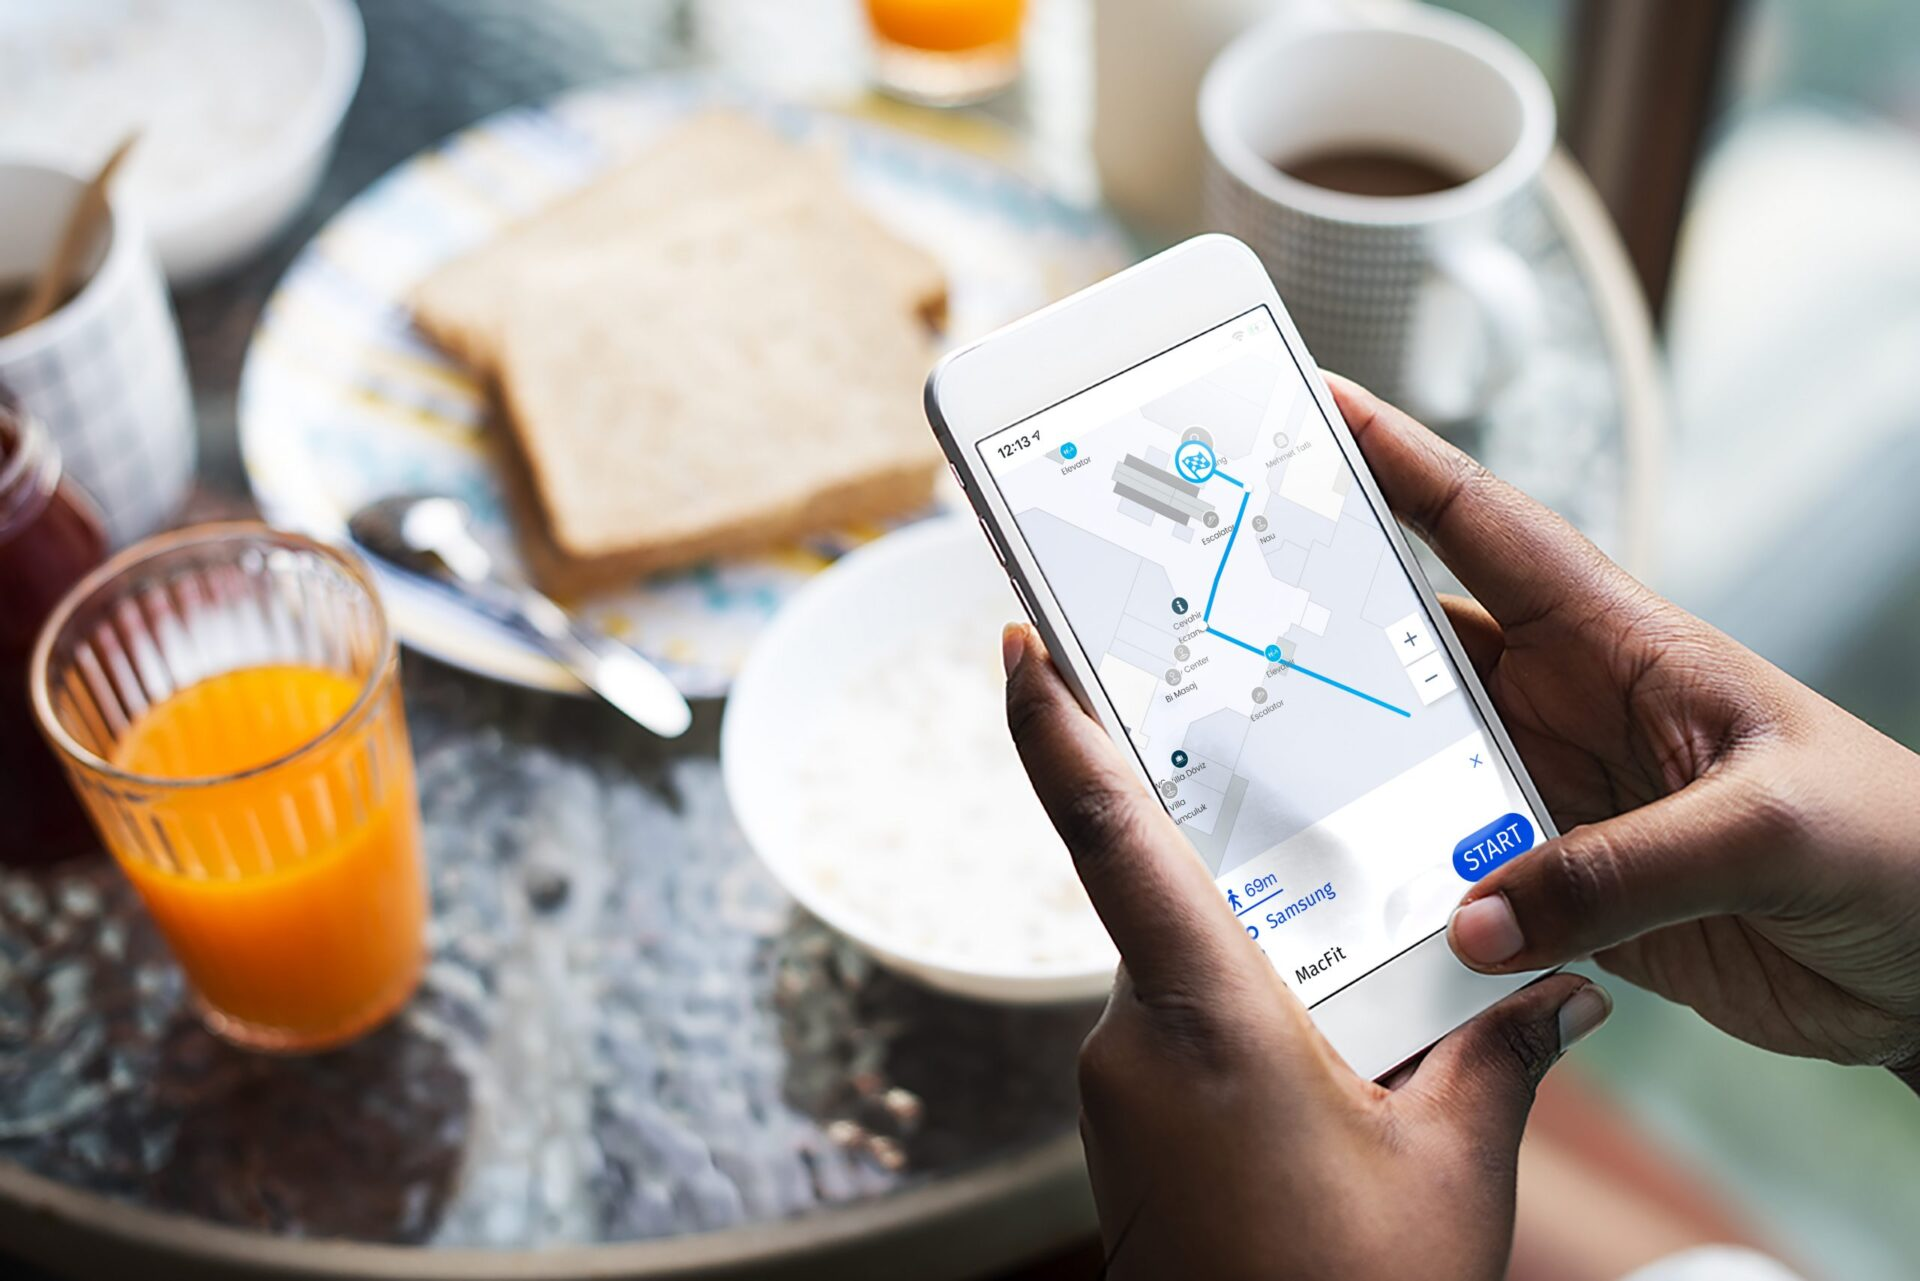 indoor navigation made easy with personalized routes